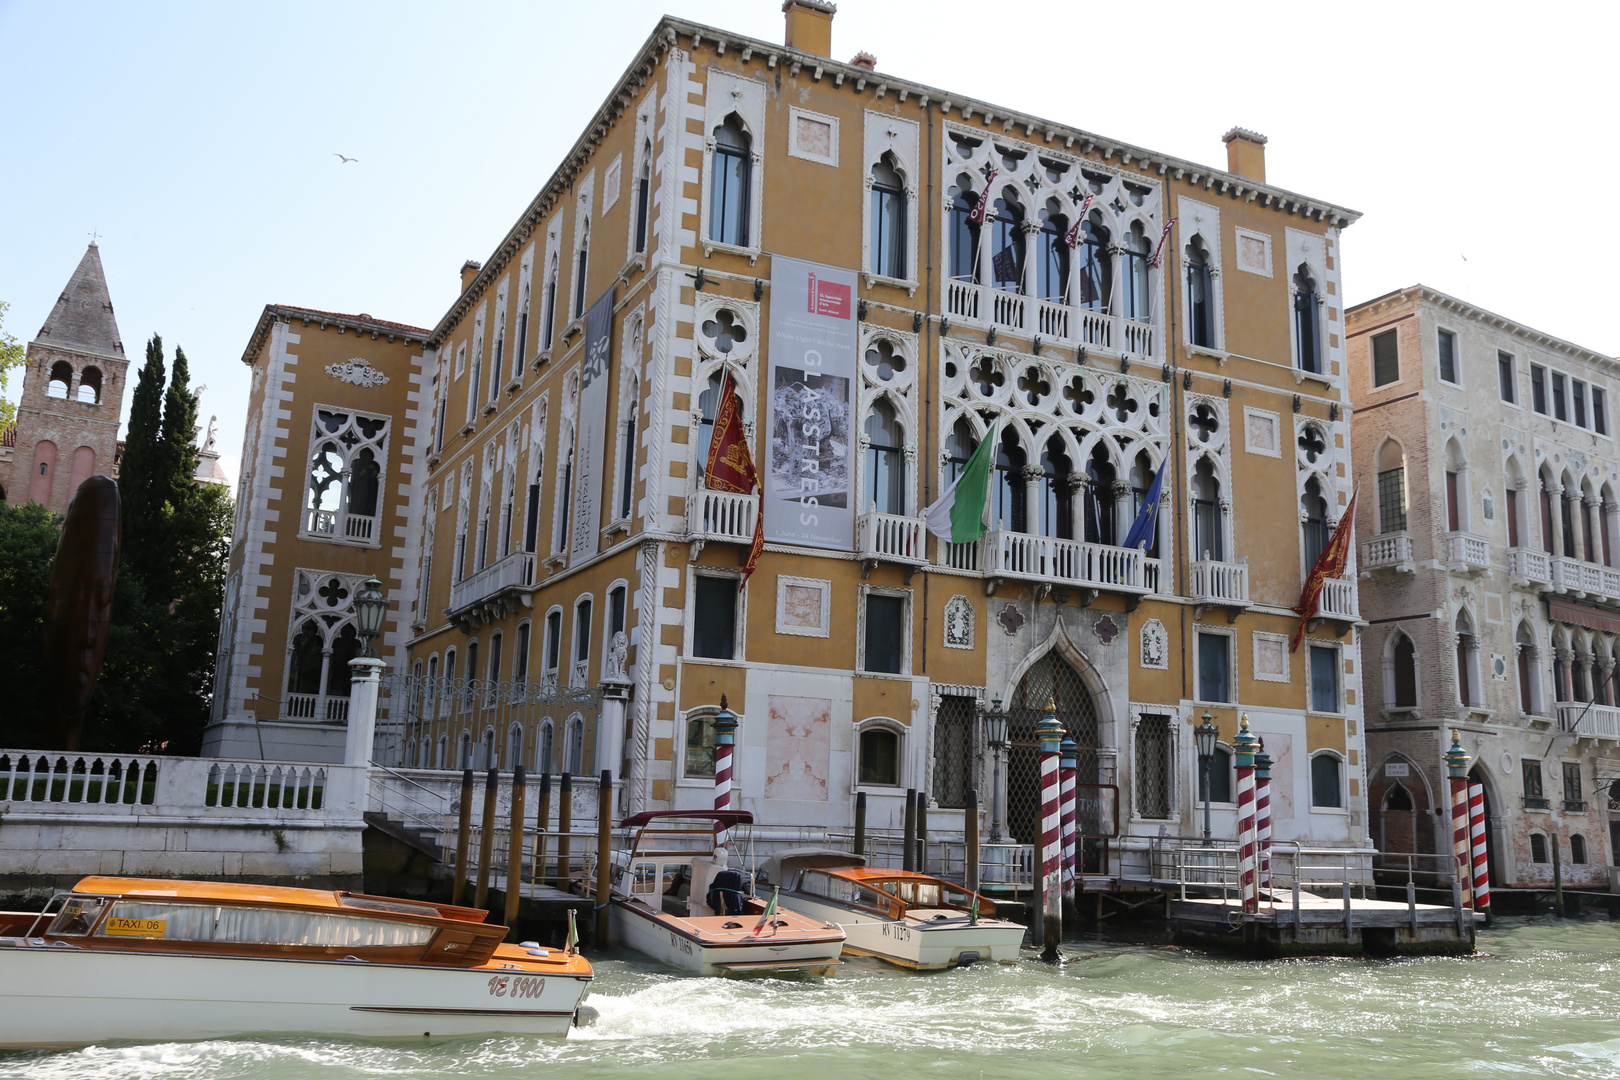 Palazzo am Canale in Venedig